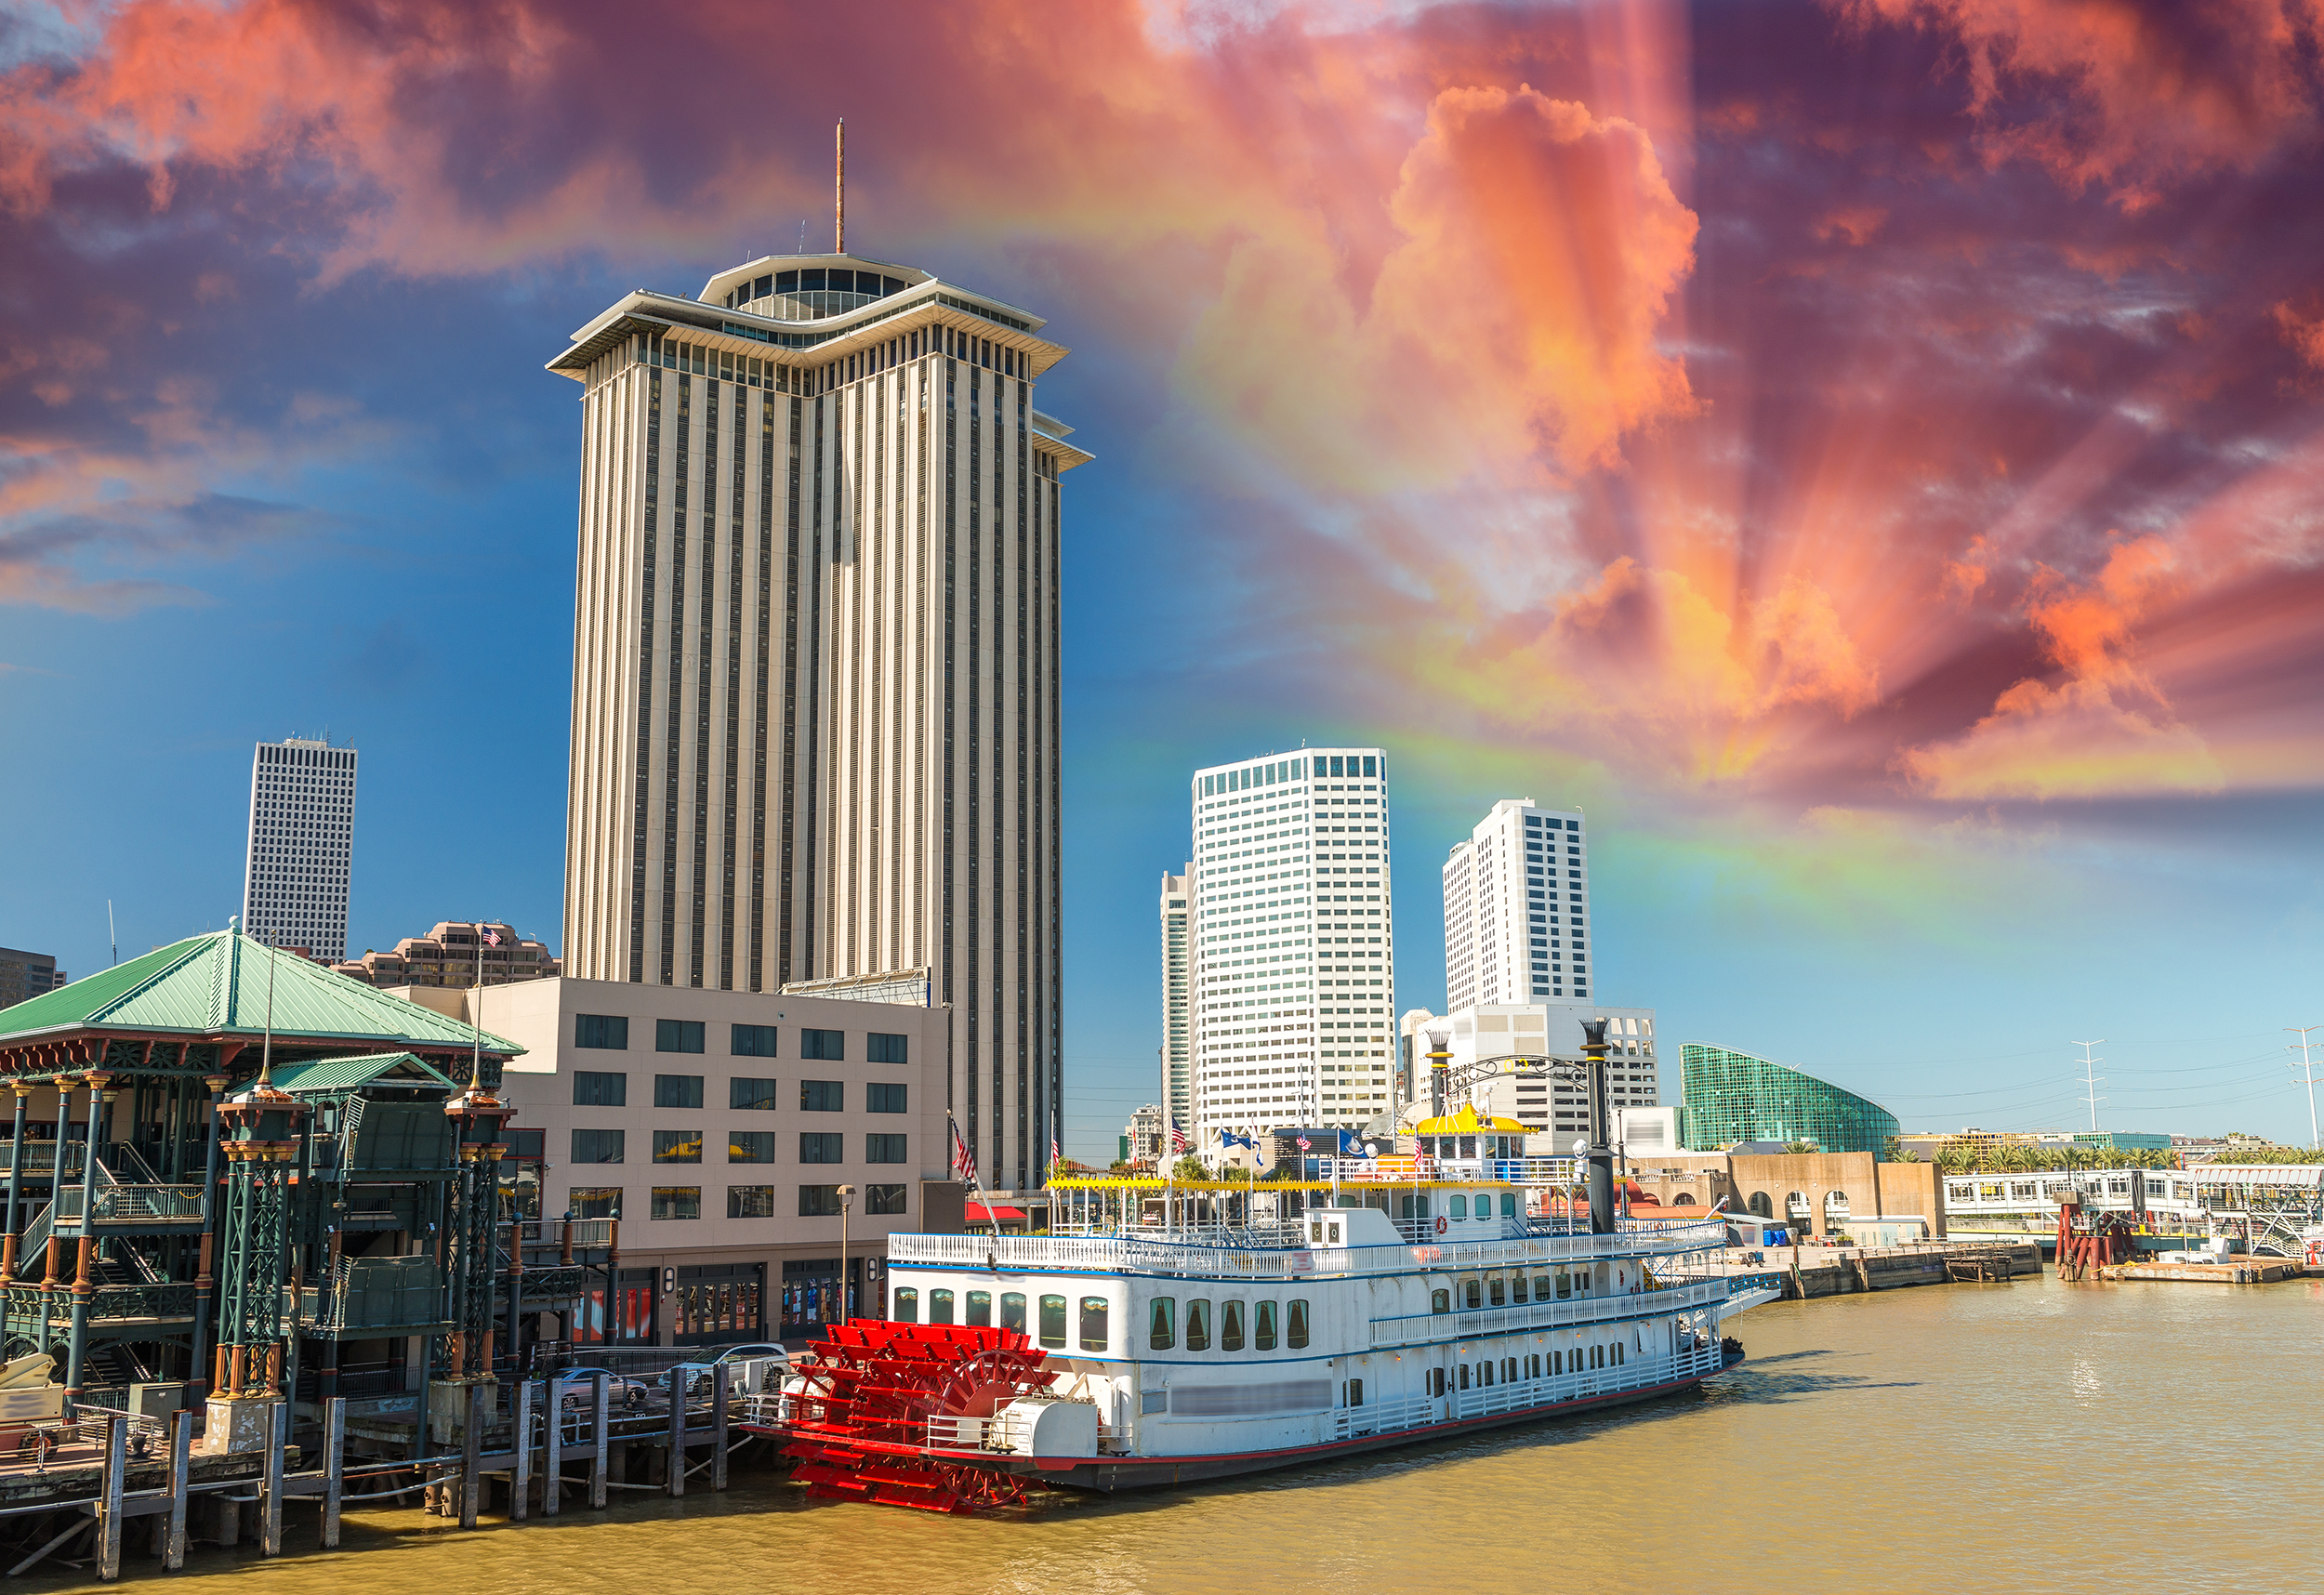 Steamboat on Mississippi river, New Orleans.